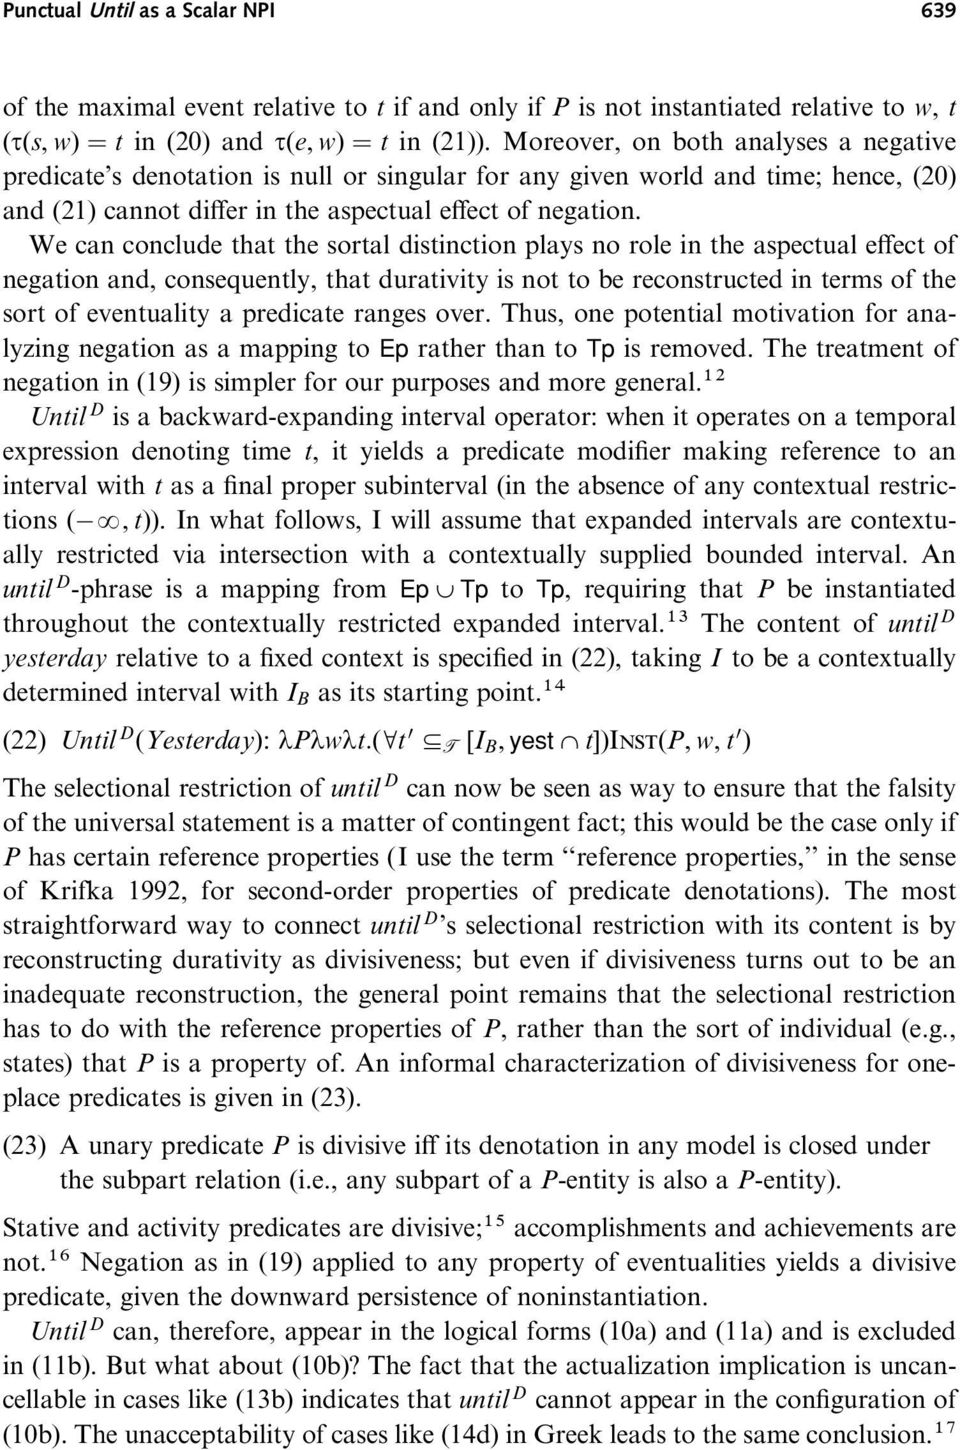 We can conclude that the sortal distinction plays no role in the aspectual e ect of negation and, consequently, that durativity is not to be reconstructed in terms of the sort of eventuality a